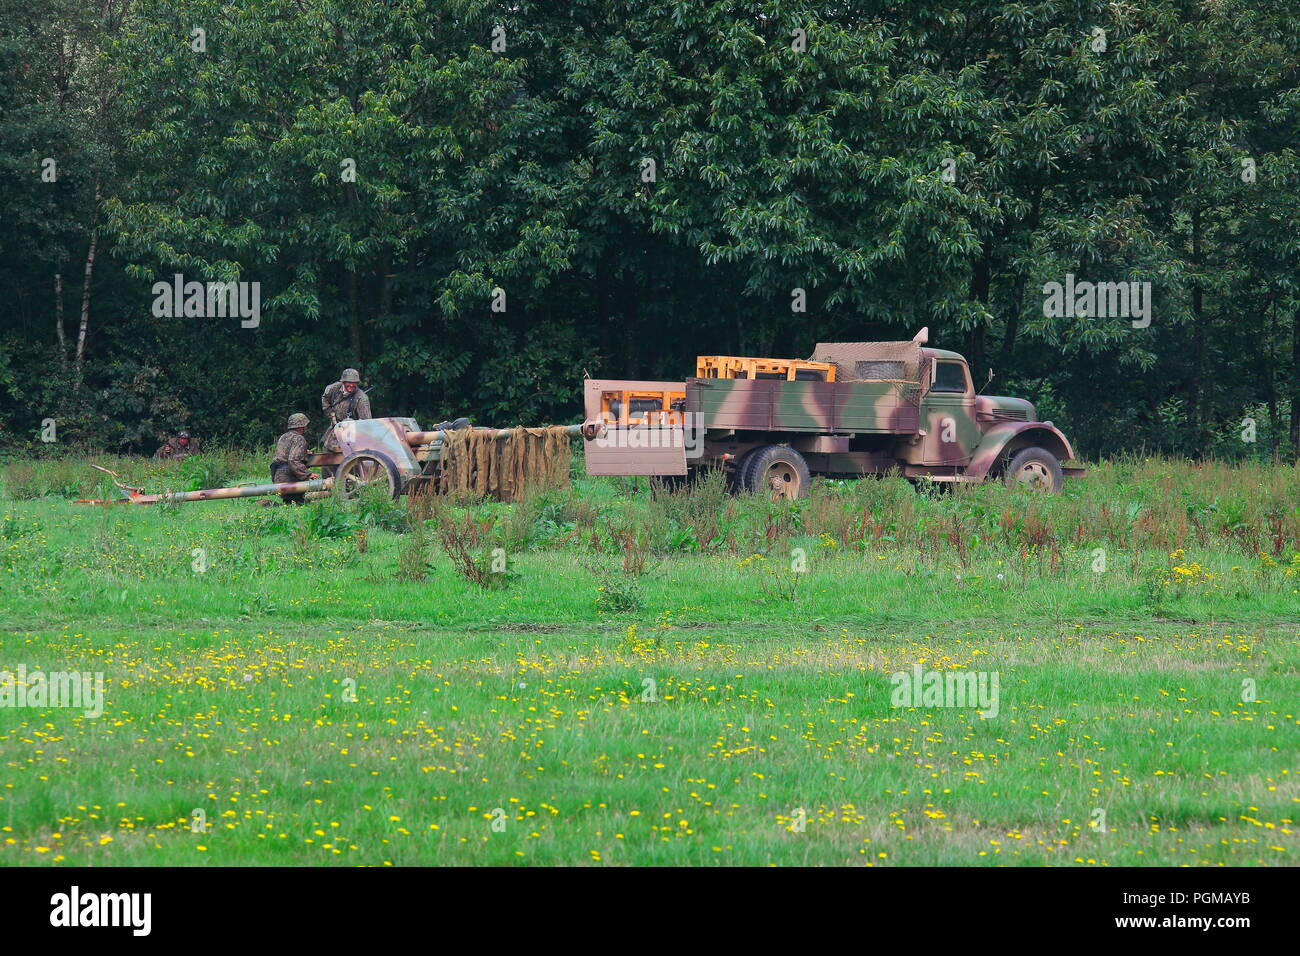 A world war two German tank manouevers in a display area ar Detling during the militaria show 2018 - Stock Image